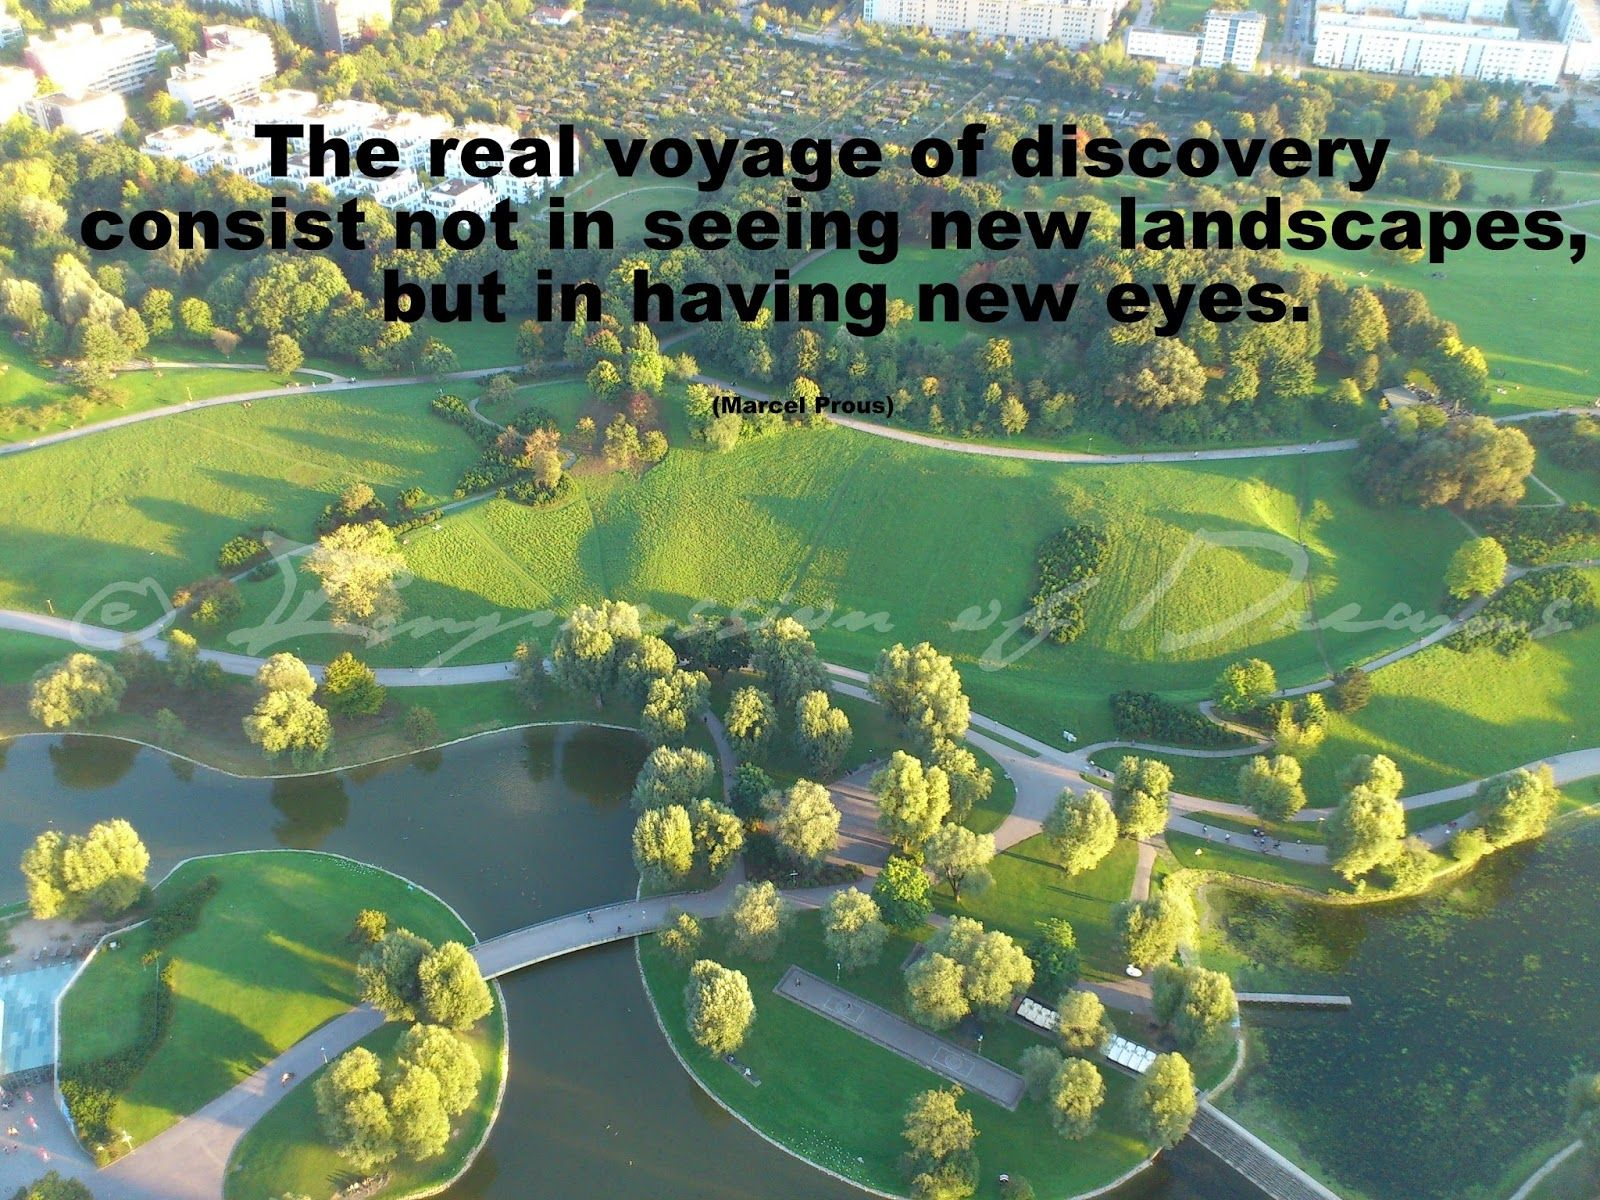 The real voyage of discovery consist not in seeing new landscapes, but in having new eyes